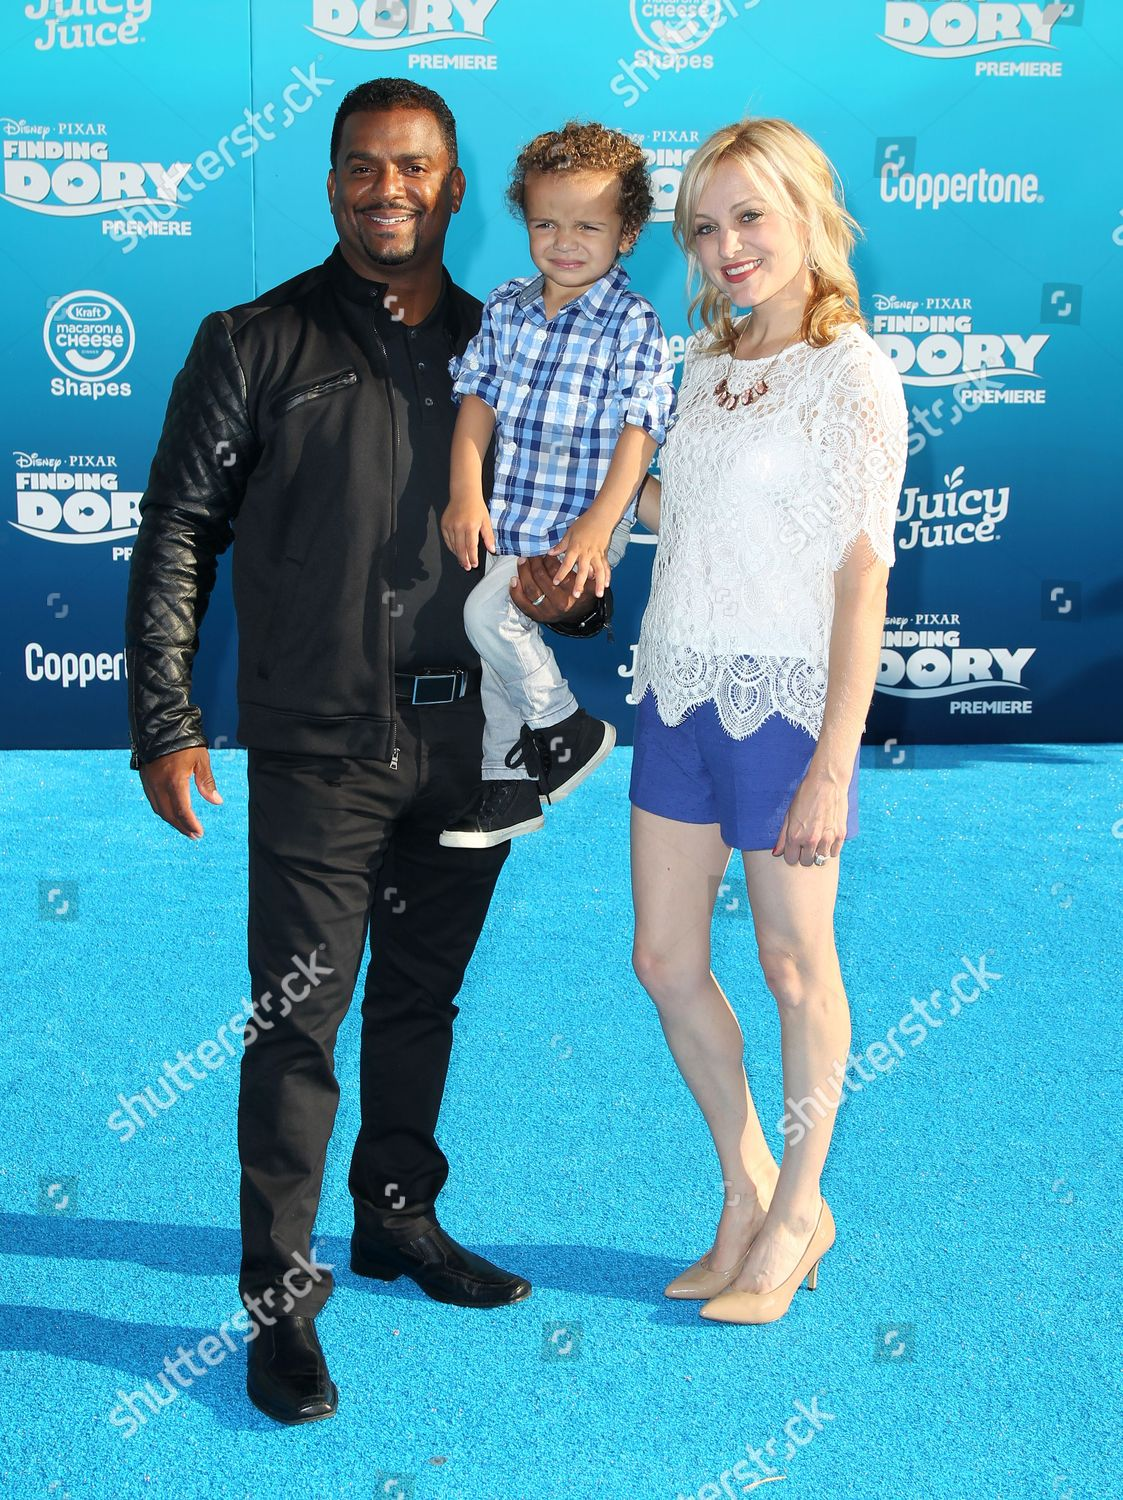 Alfonso Ribeiro Angela Unkrich Alfonso Lincoln Ribeiro Editorial Stock Photo Stock Image Shutterstock Read her biography and other facts. https www shutterstock com editorial image editorial finding dory film premiere los angeles america 08 jun 2016 5718204cl